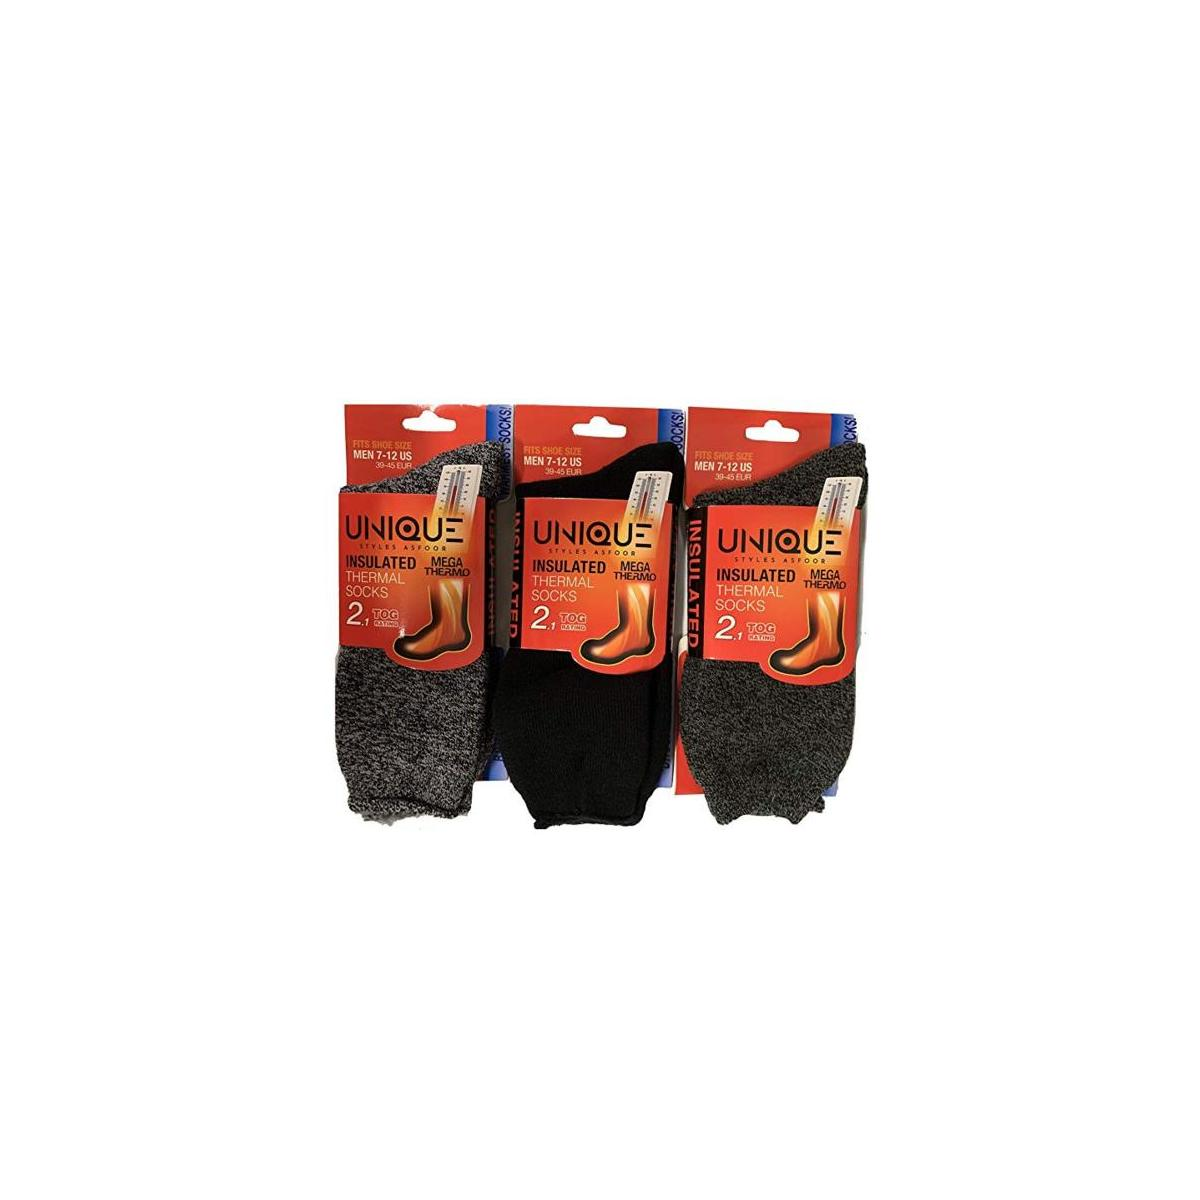 3 Pack Black,Charcoal,Dark Grey Men's Thermal Socks - Size 7-12